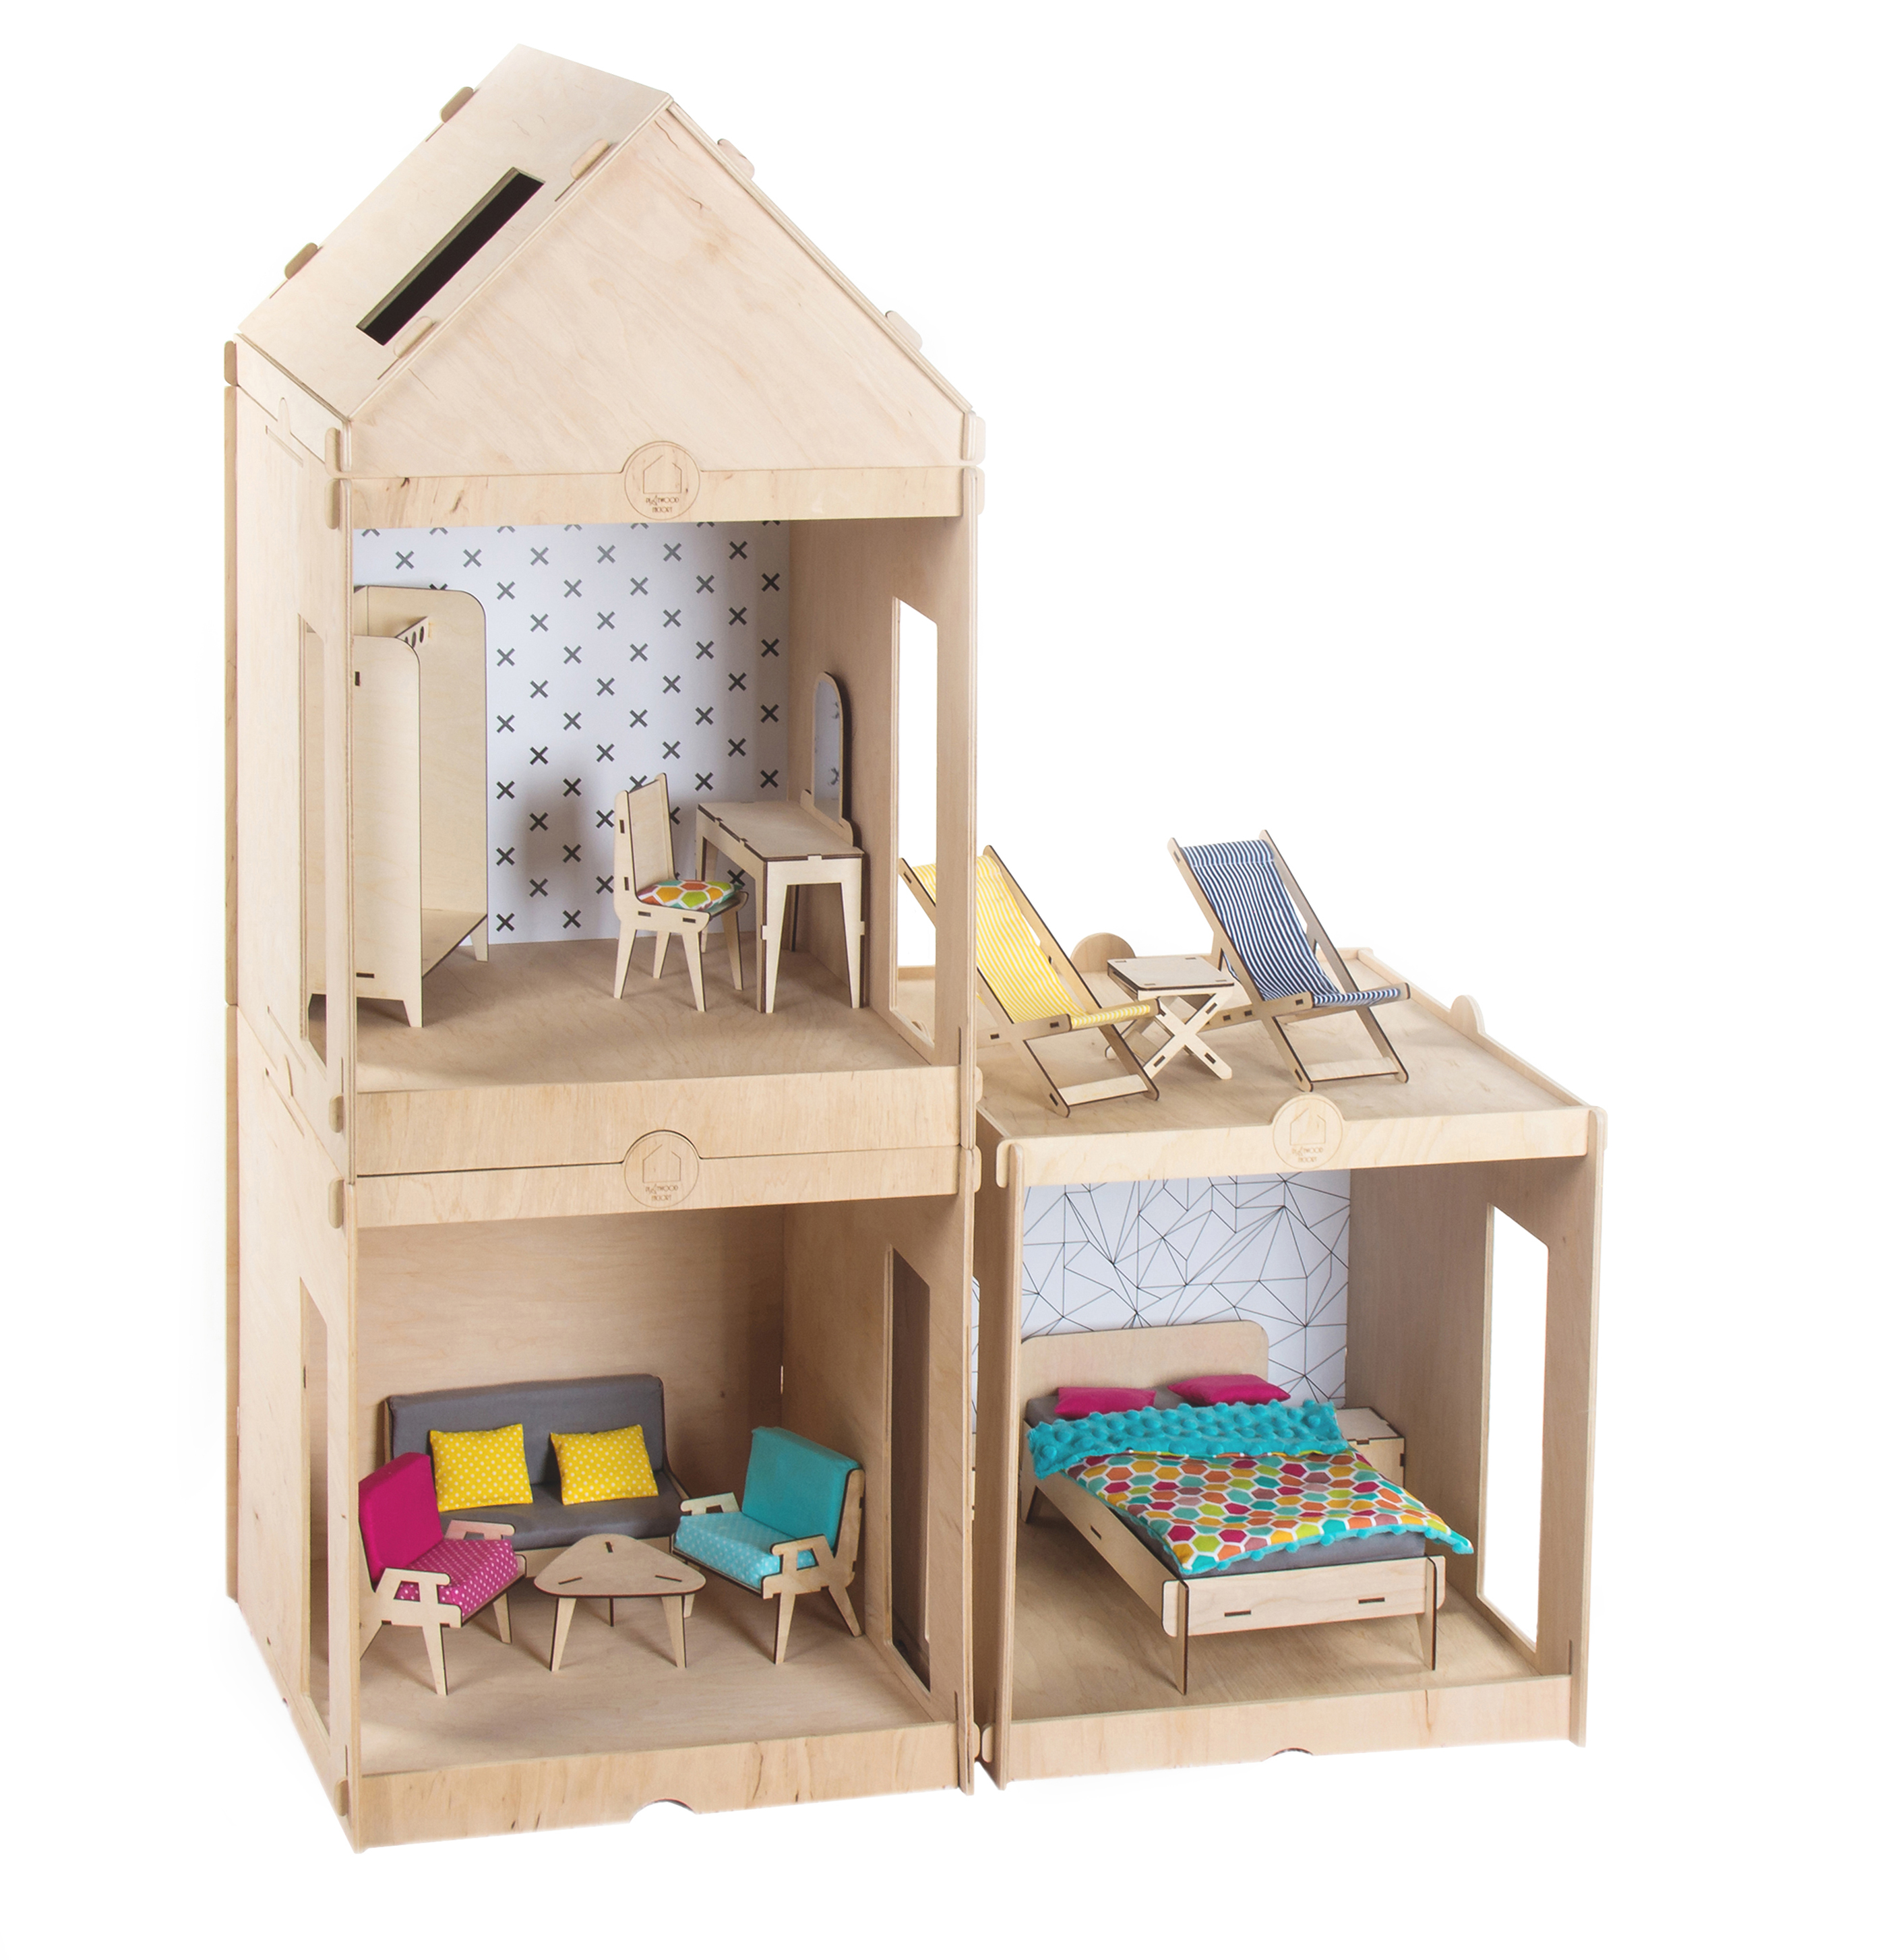 Dollhouse For Barbie Dolls With Furniture Big Playwood Factory